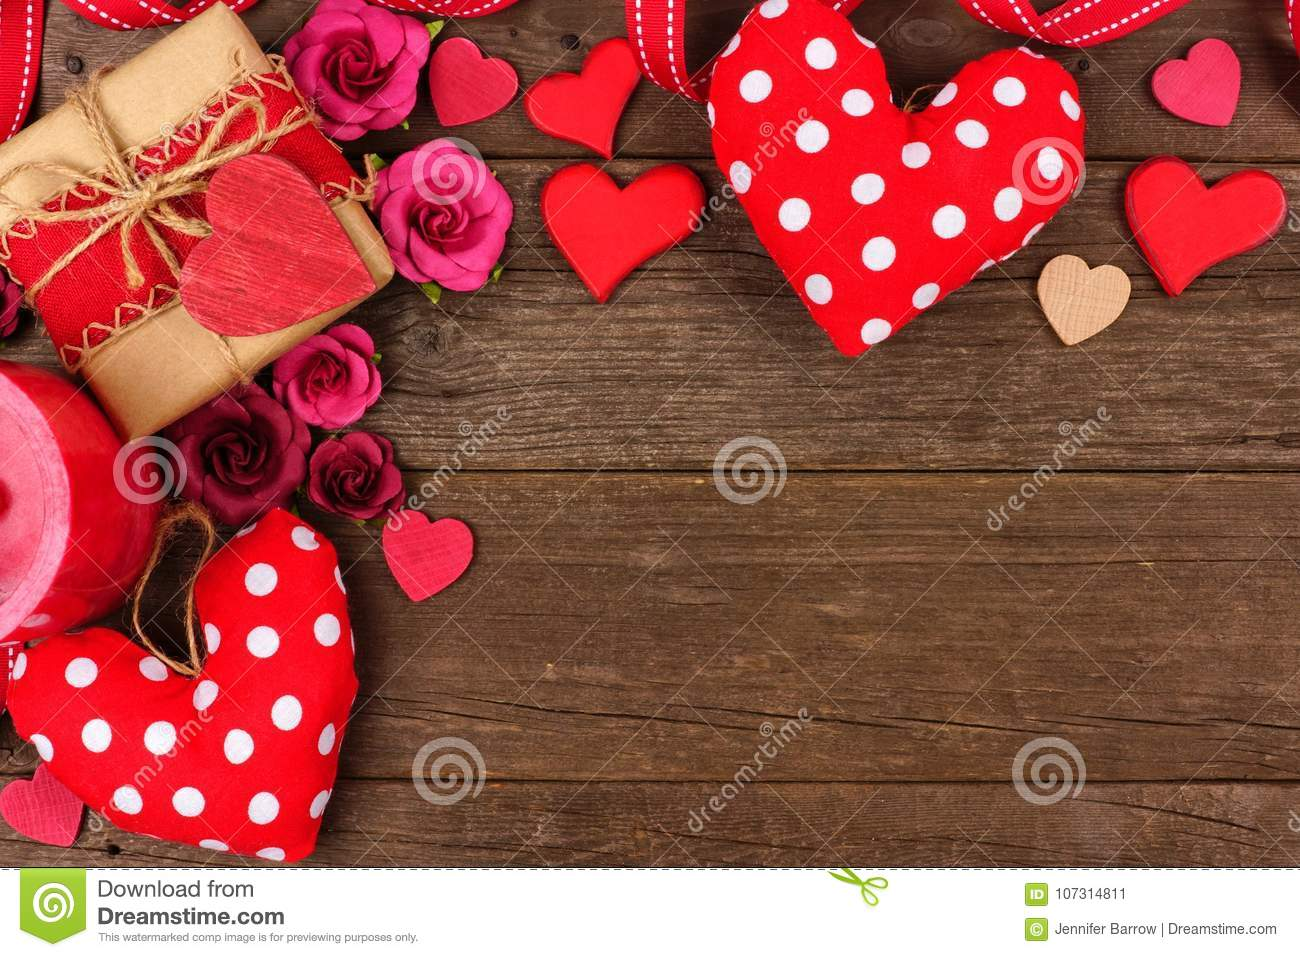 Valentines Day Corner Border Of Hearts Gifts Flowers And Decor On